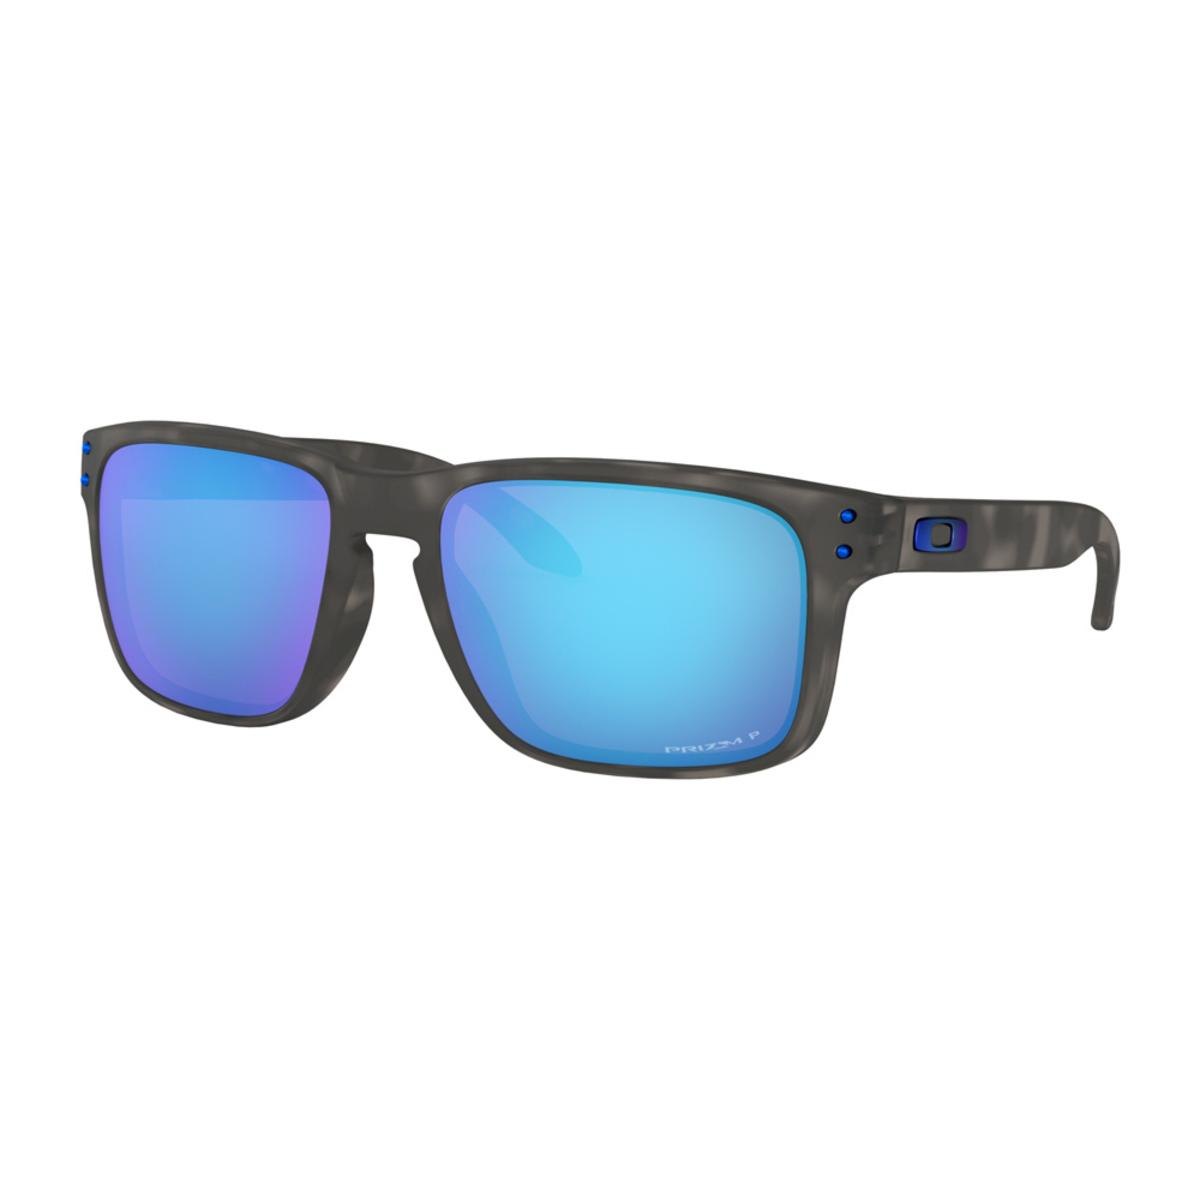 Oakley Holbrook Matte Black Tortoise Sunglasses w Prizm Sapphire Polarized  - The Warming Store 114d4117db